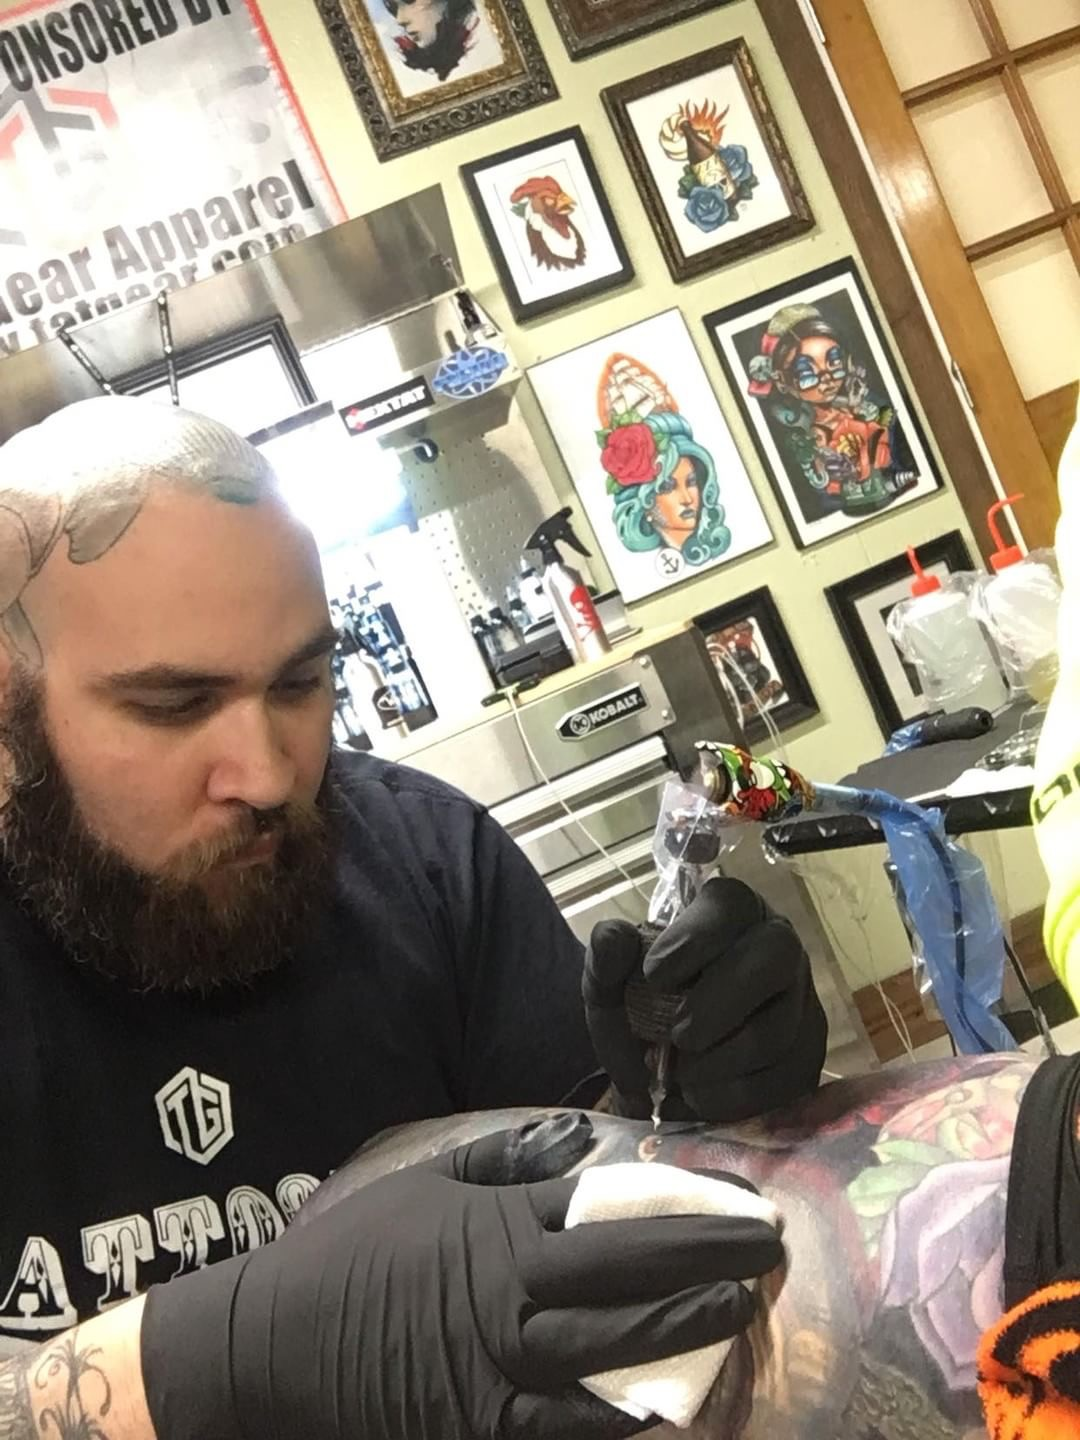 Brett Boone - Brett is a solid tattooer that can do a wide range of tattoo styles. Click on his picture to see his portfolio!